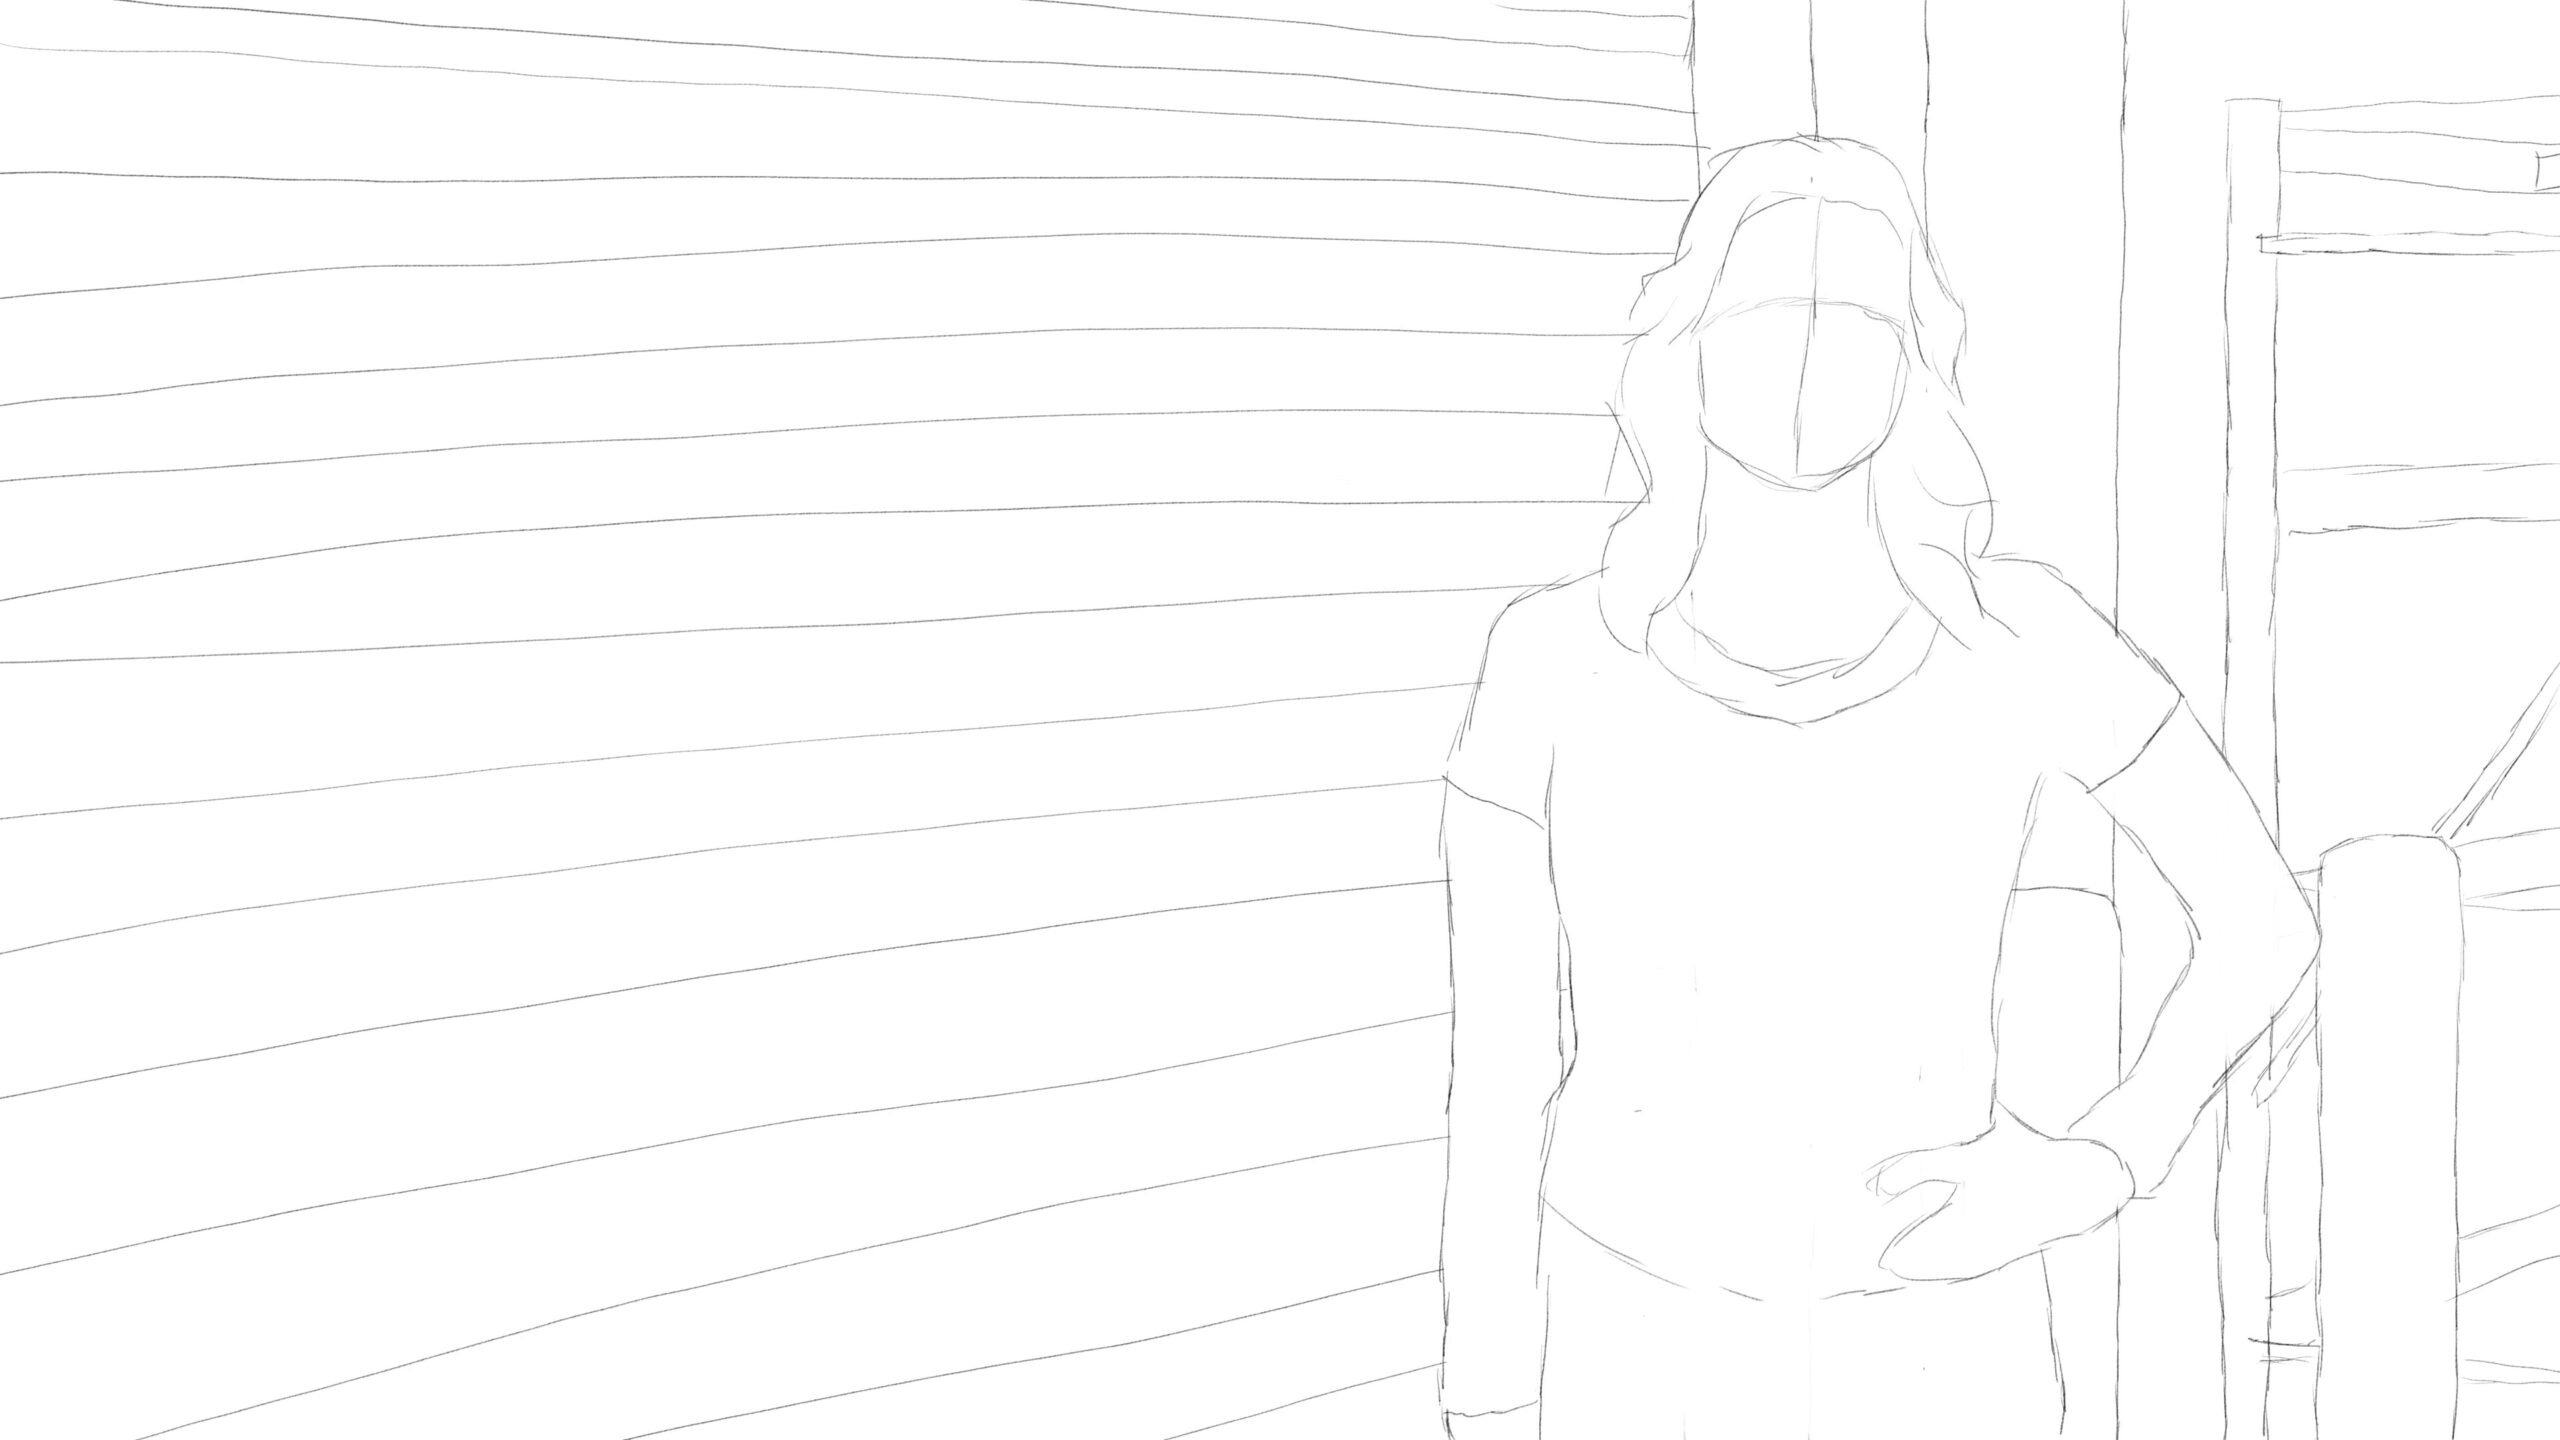 Pitney Bowes-RumbleOn concept art - close-up drawing of a person in front of garage door